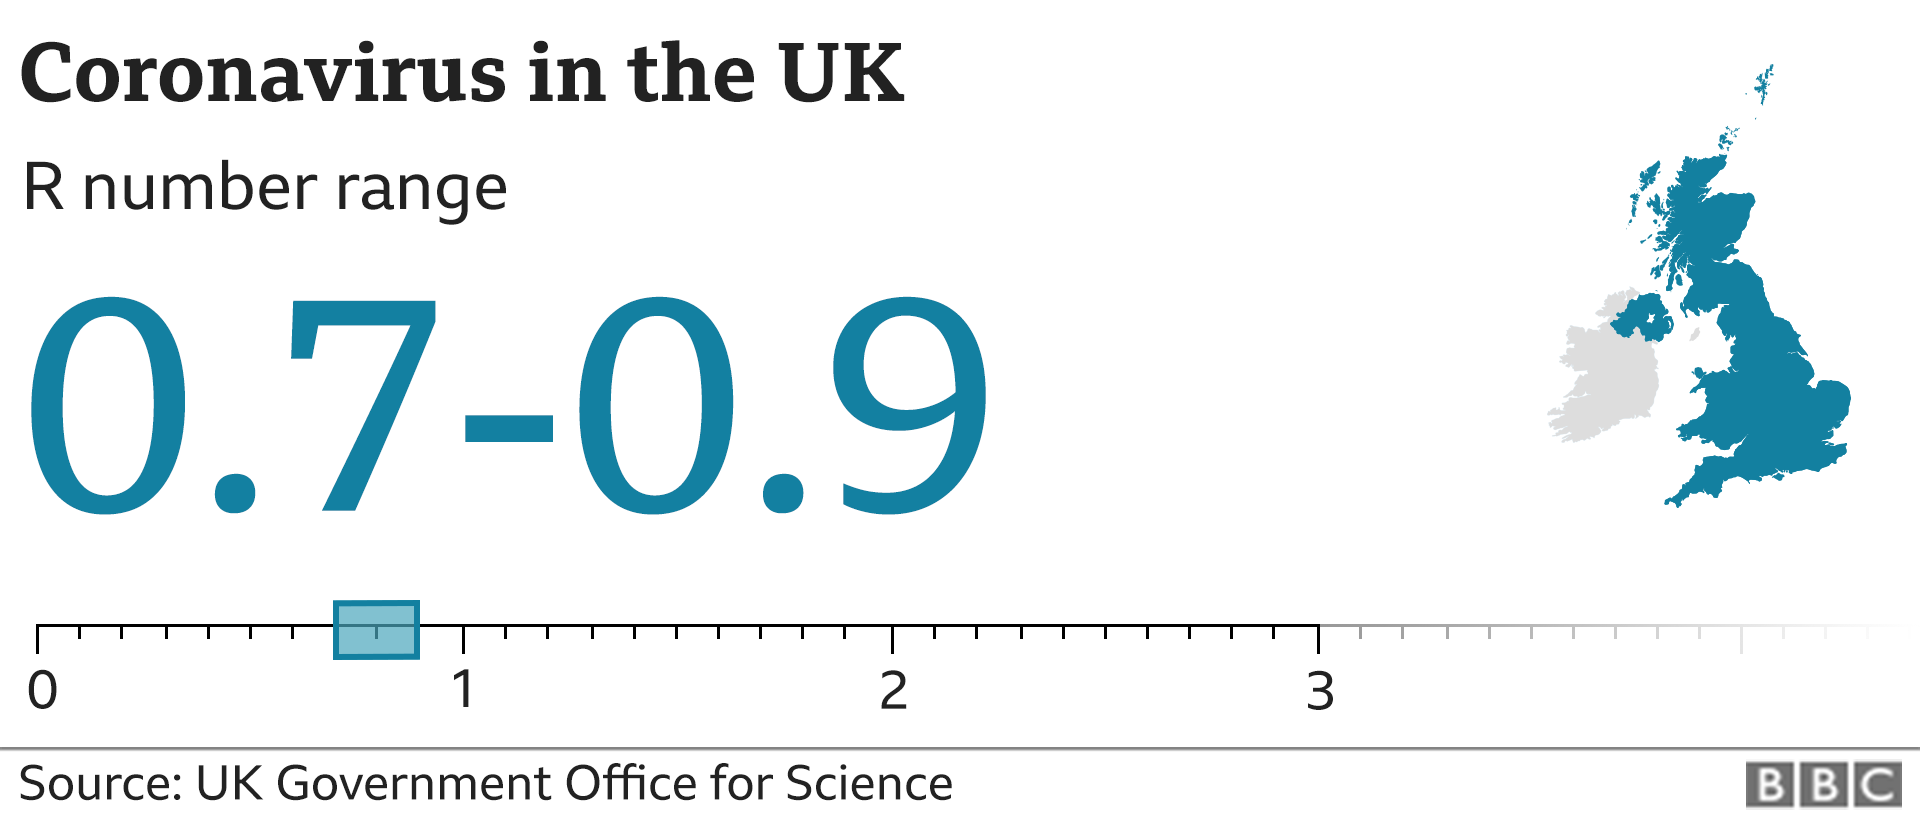 Graphic showing the estimated R number in the UK is between 0.7 and 0.9